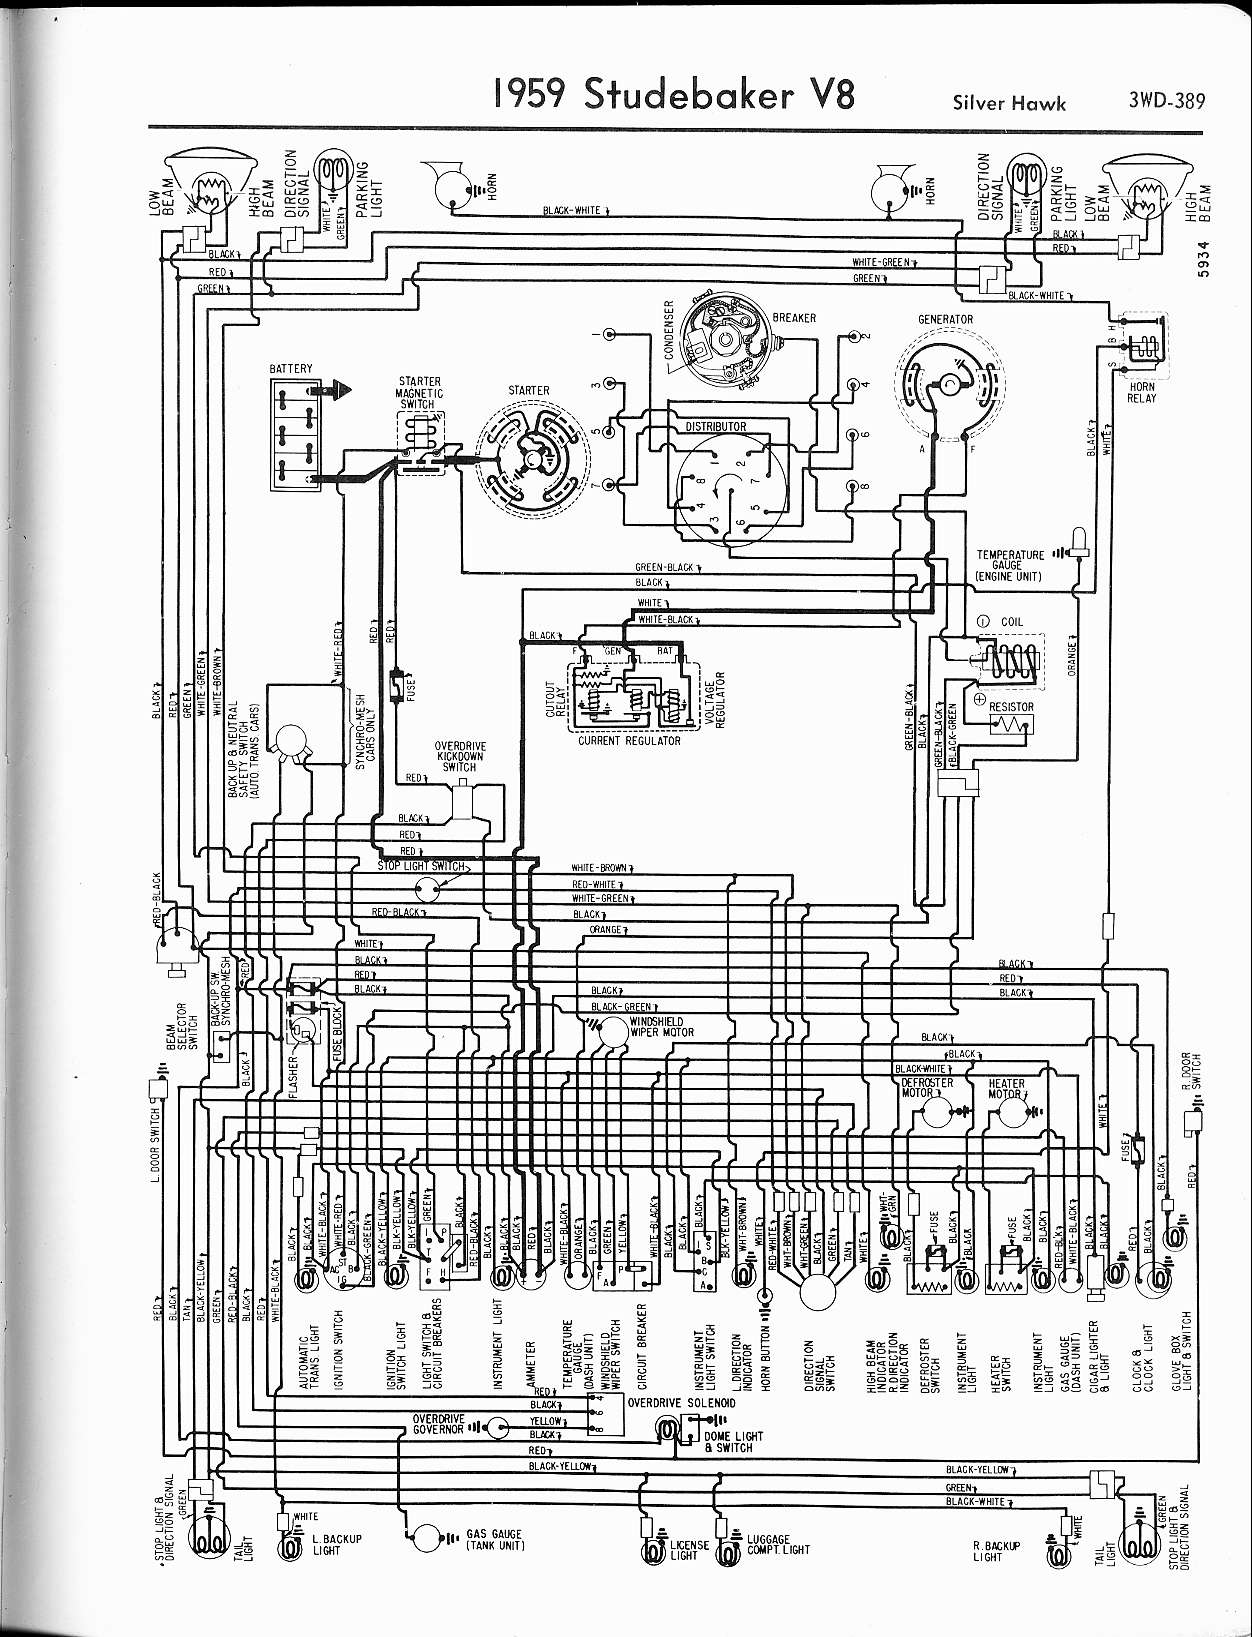 Cushman V Thumb O C Thfawnrv J Rso K L Bisspbxpje F Sulhg together with  further  further Three Prong Flasher Wiring In Pin Flasher Relay Wiring Diagram additionally Bosch Pin Relay Wiring Diagram Antihrap Me With V. on three prong flasher wiring diagram